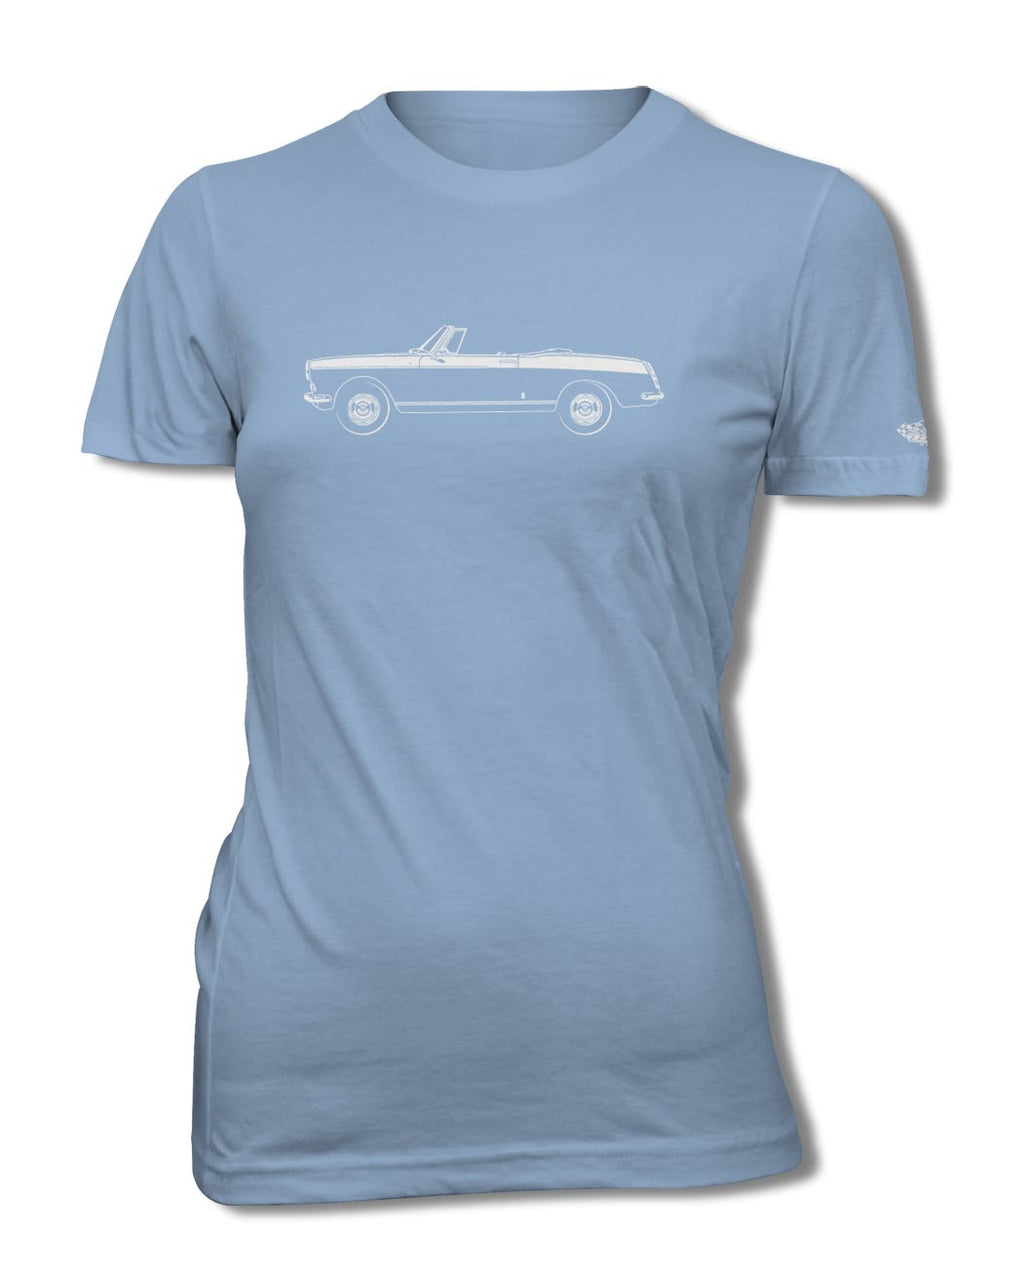 Peugeot 504 Convertible Cabriolet T-Shirt - Women - Side View